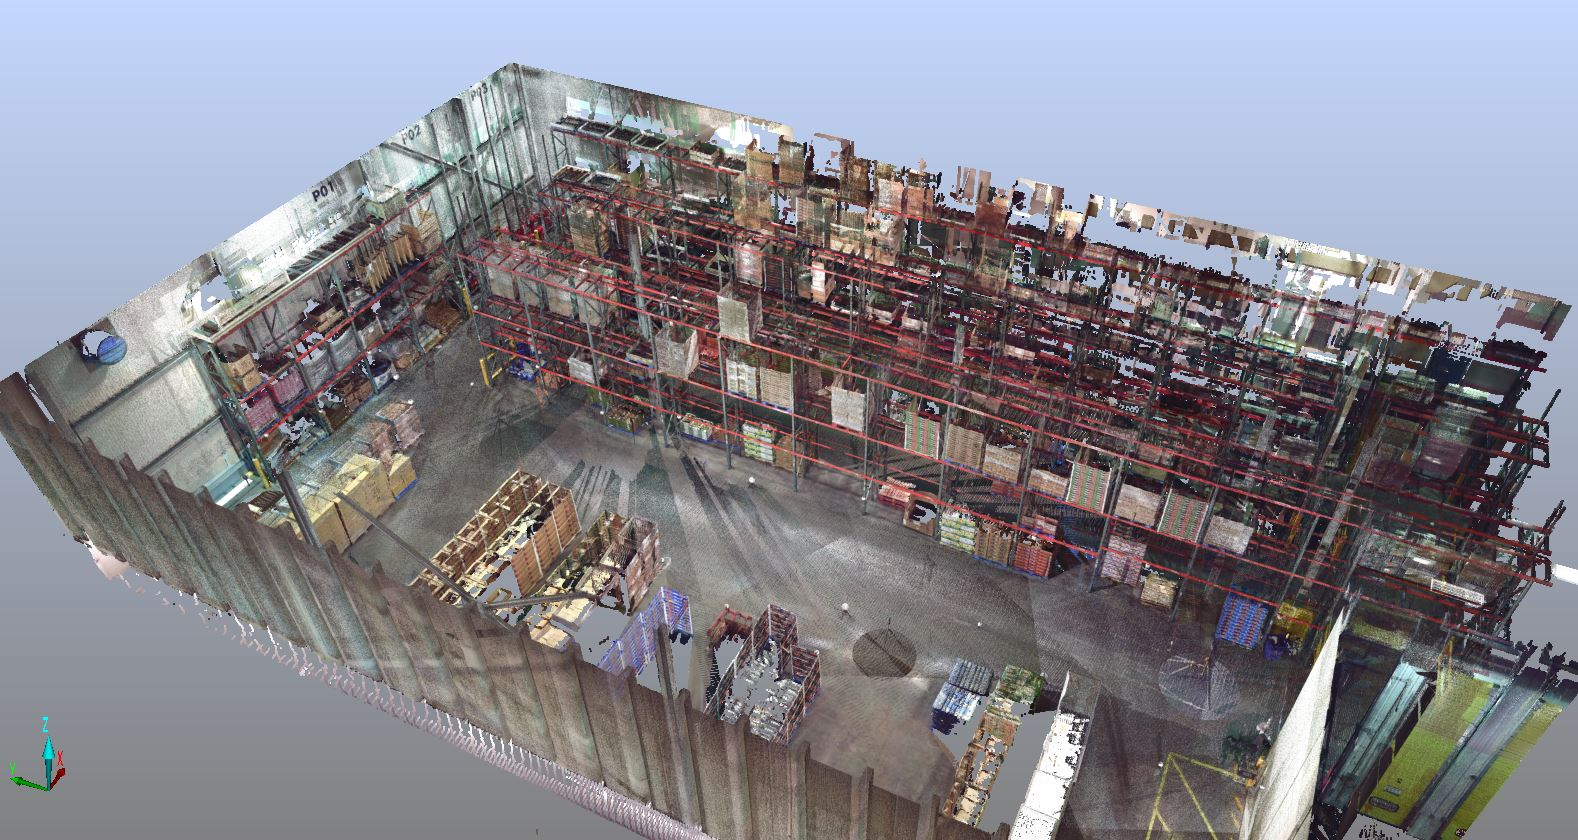 Vidoni has been consulting on manufacturing and building technology design, collaboration and production work bridging the gaps between the as-built factory floor and building conditions with Laser scanning (LiDAR), AR/MR and VR.